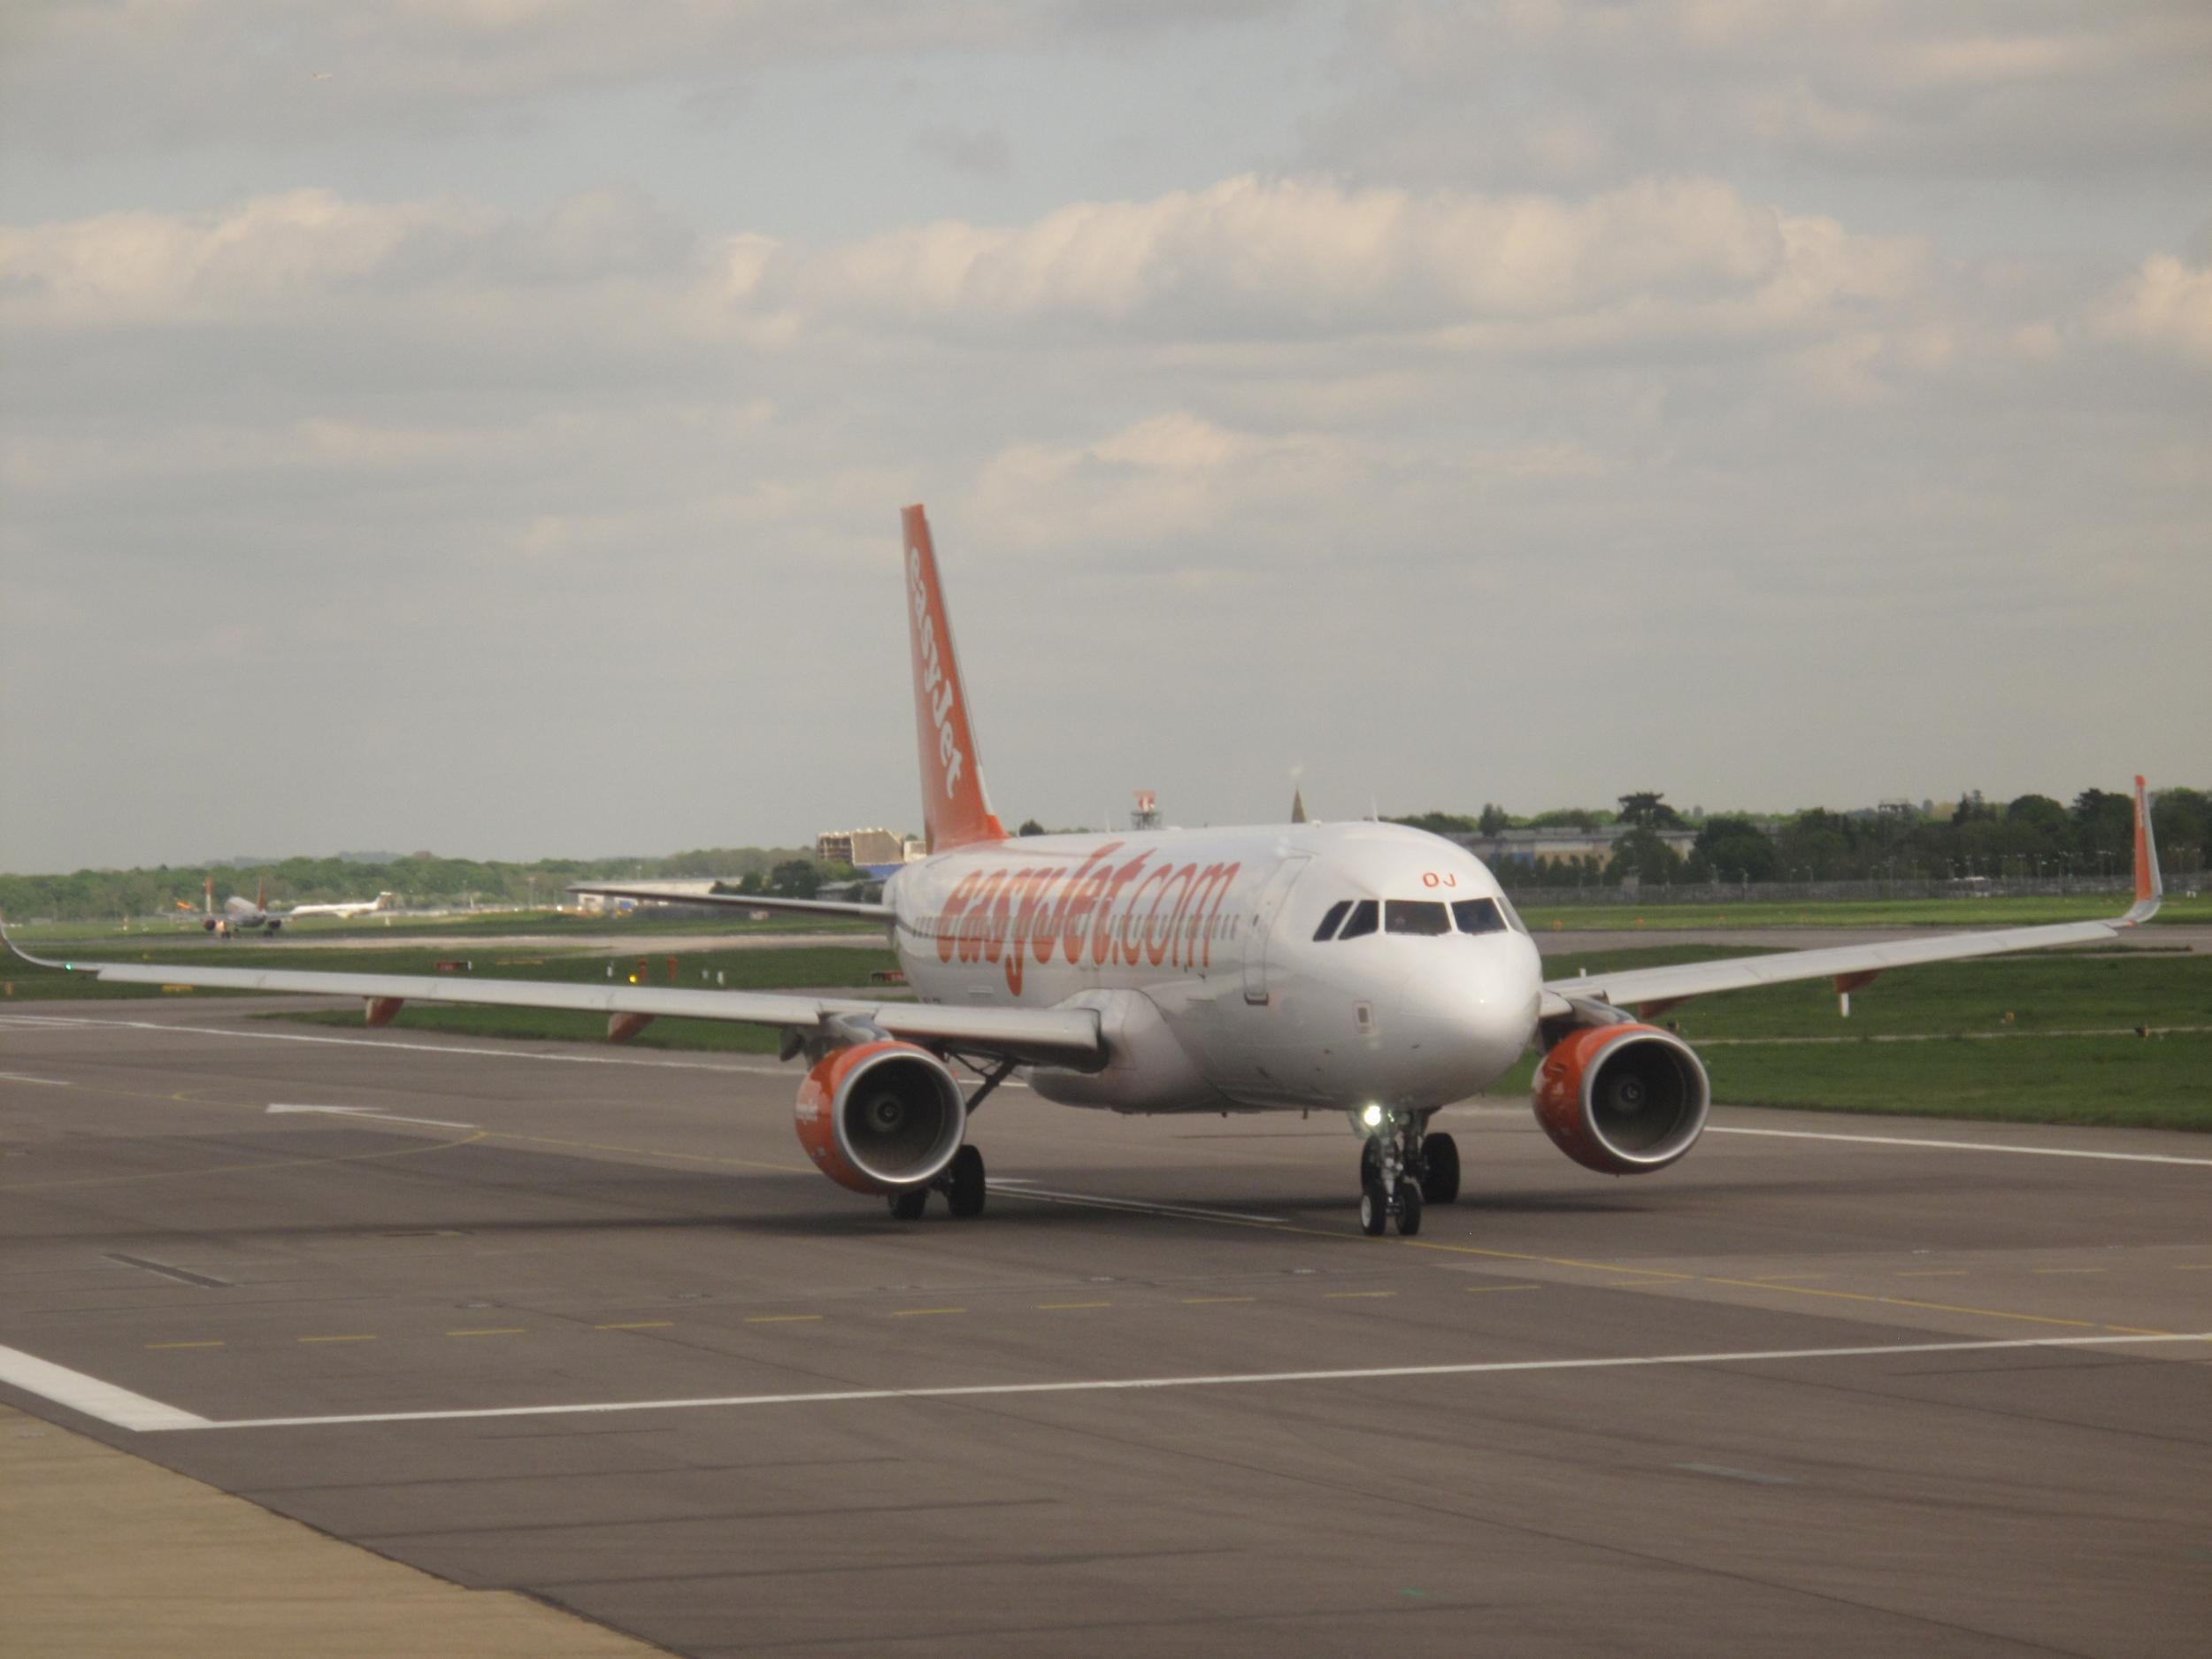 easyJet emergency landing: 'Suspicious conversation' causes diversion and evacuation of UK-bound flight